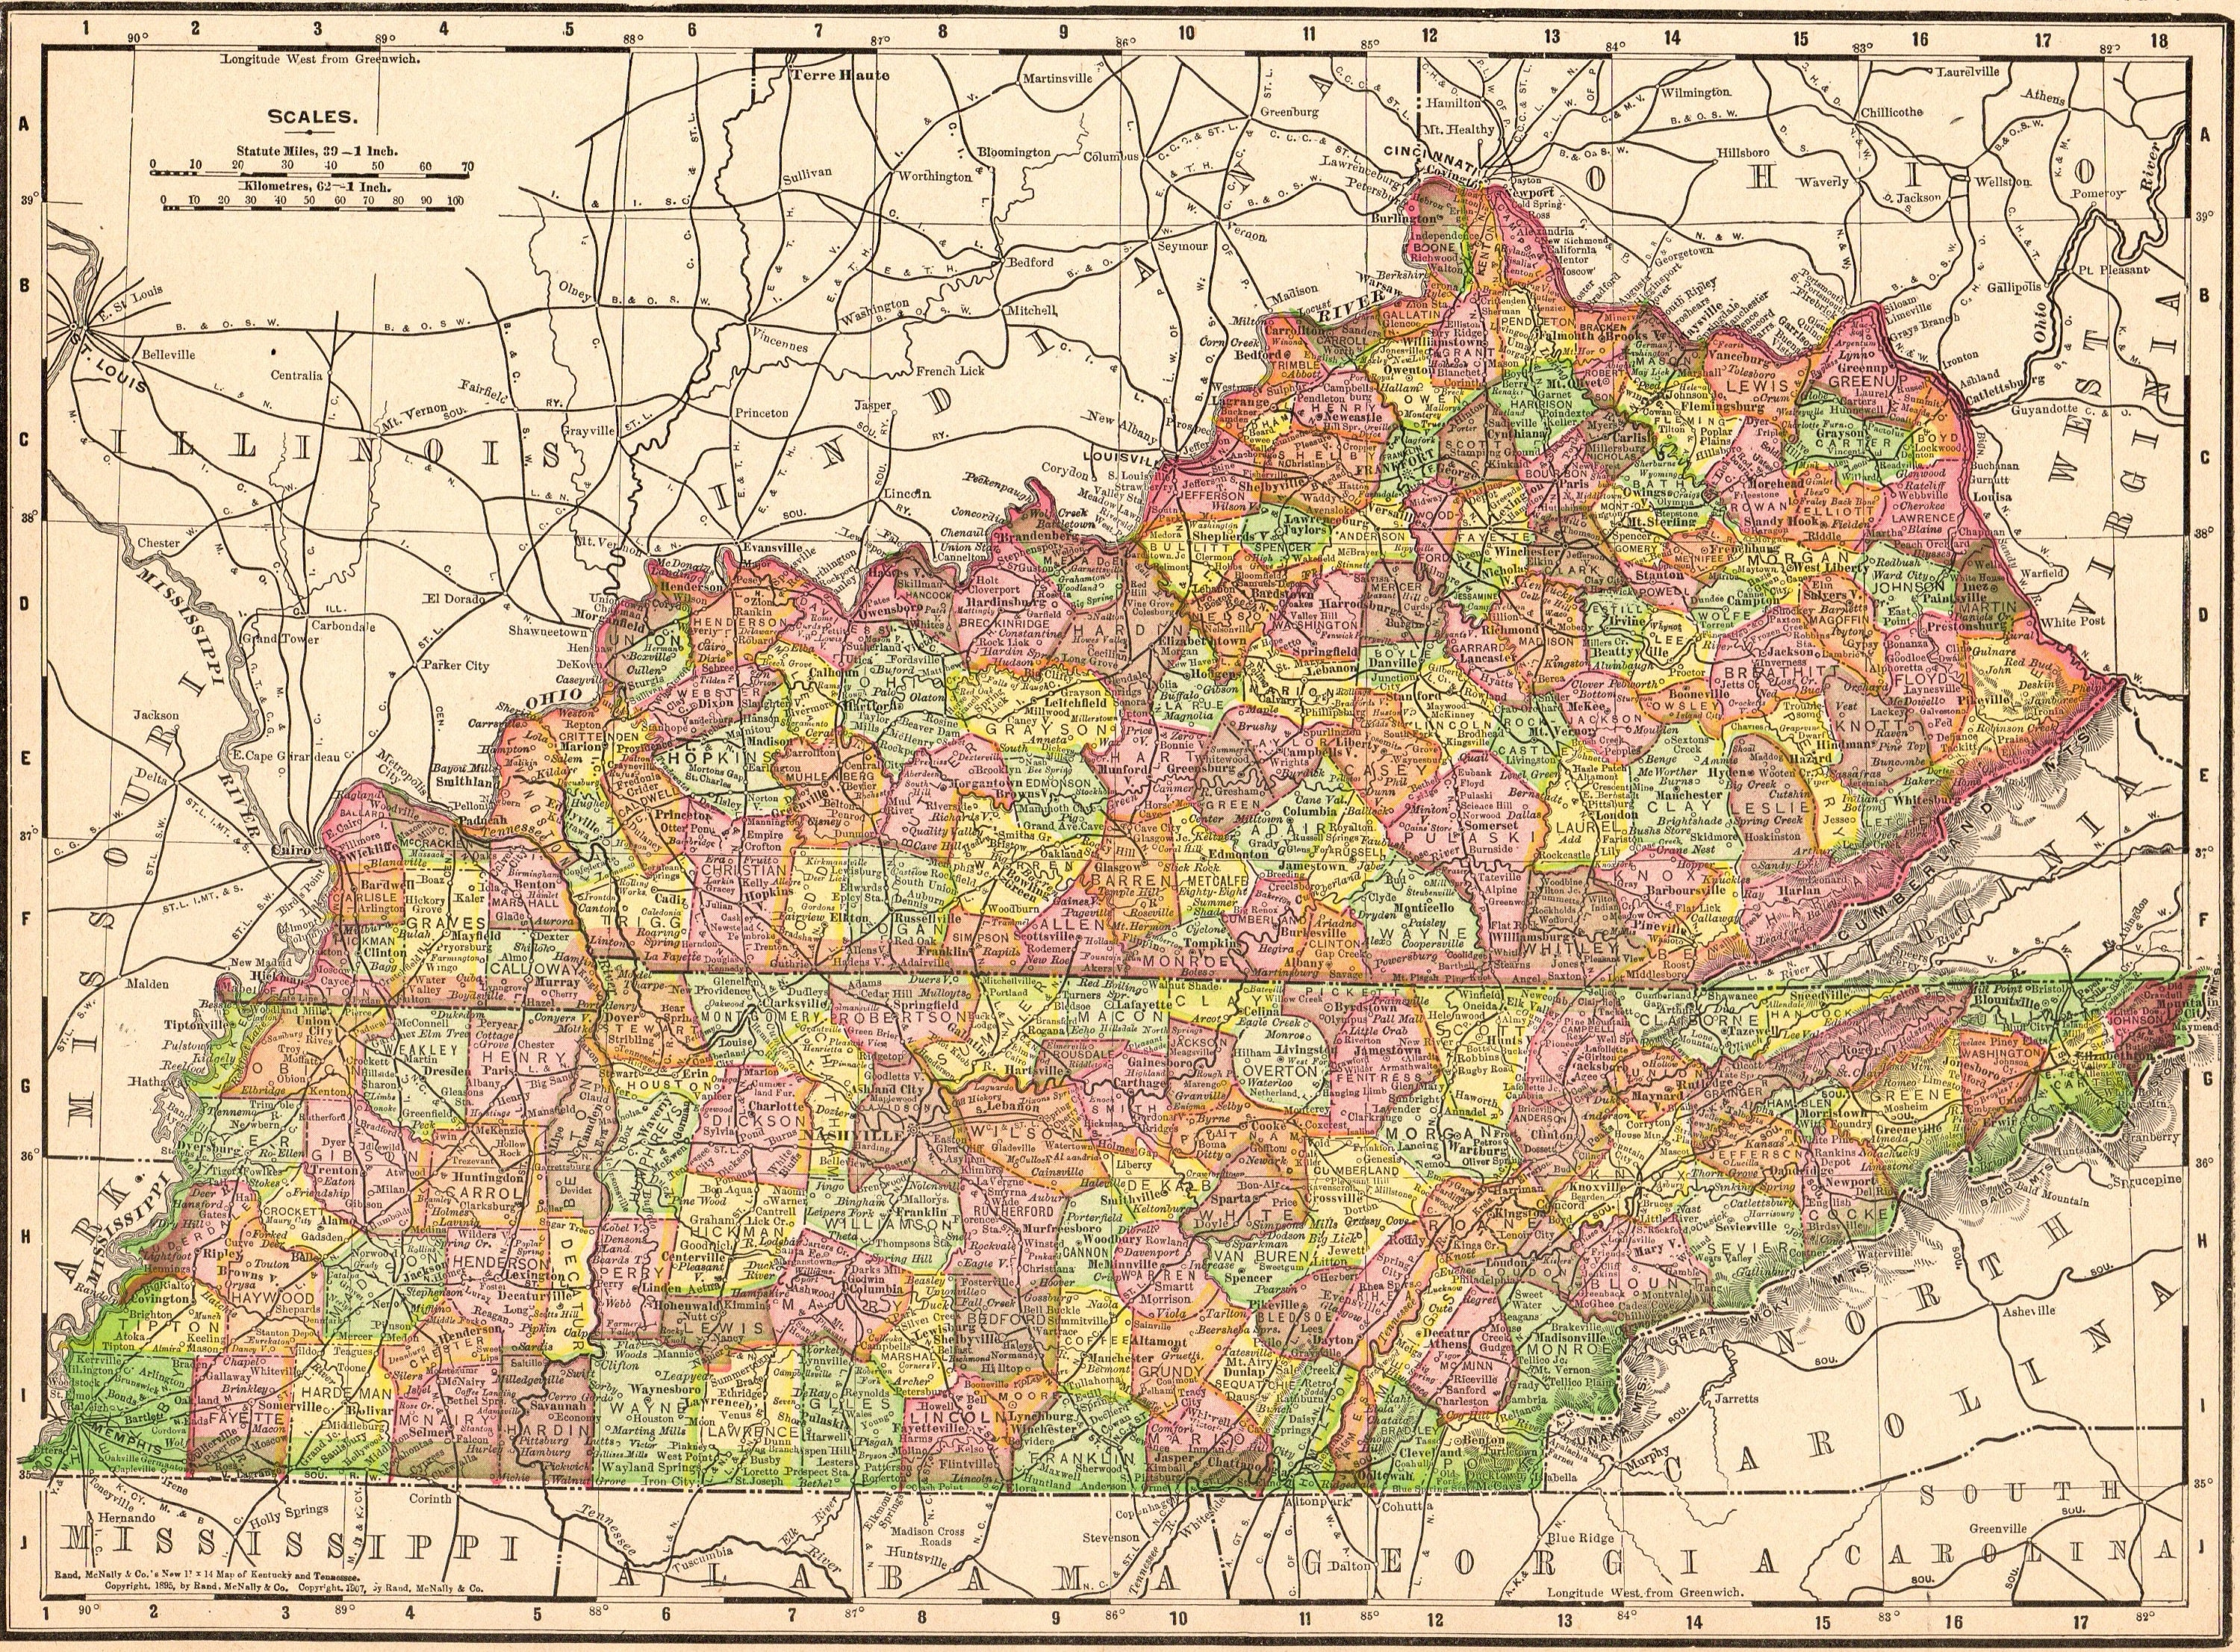 1909 Antique KENTUCKY TENNESSEE State Map Vintge Map of Kentucky Gallery on kentucky state travel map, kentucky and tennessee county maps, kentucky state county map, kentucky state fair map, indiana tri-state maps, hancock county property maps, kentucky wall maps, state of tennessee district maps, kentucky state zip code map, kentucky and virginia maps, kentucky state university map, kentucky state information, kentucky and surrounding states map, kentucky state parks campgrounds, ky parks and maps, kentucky frontier maps, kentucky department of transportation maps, colorado elk concentration maps, google maps, kentucky and its capital,